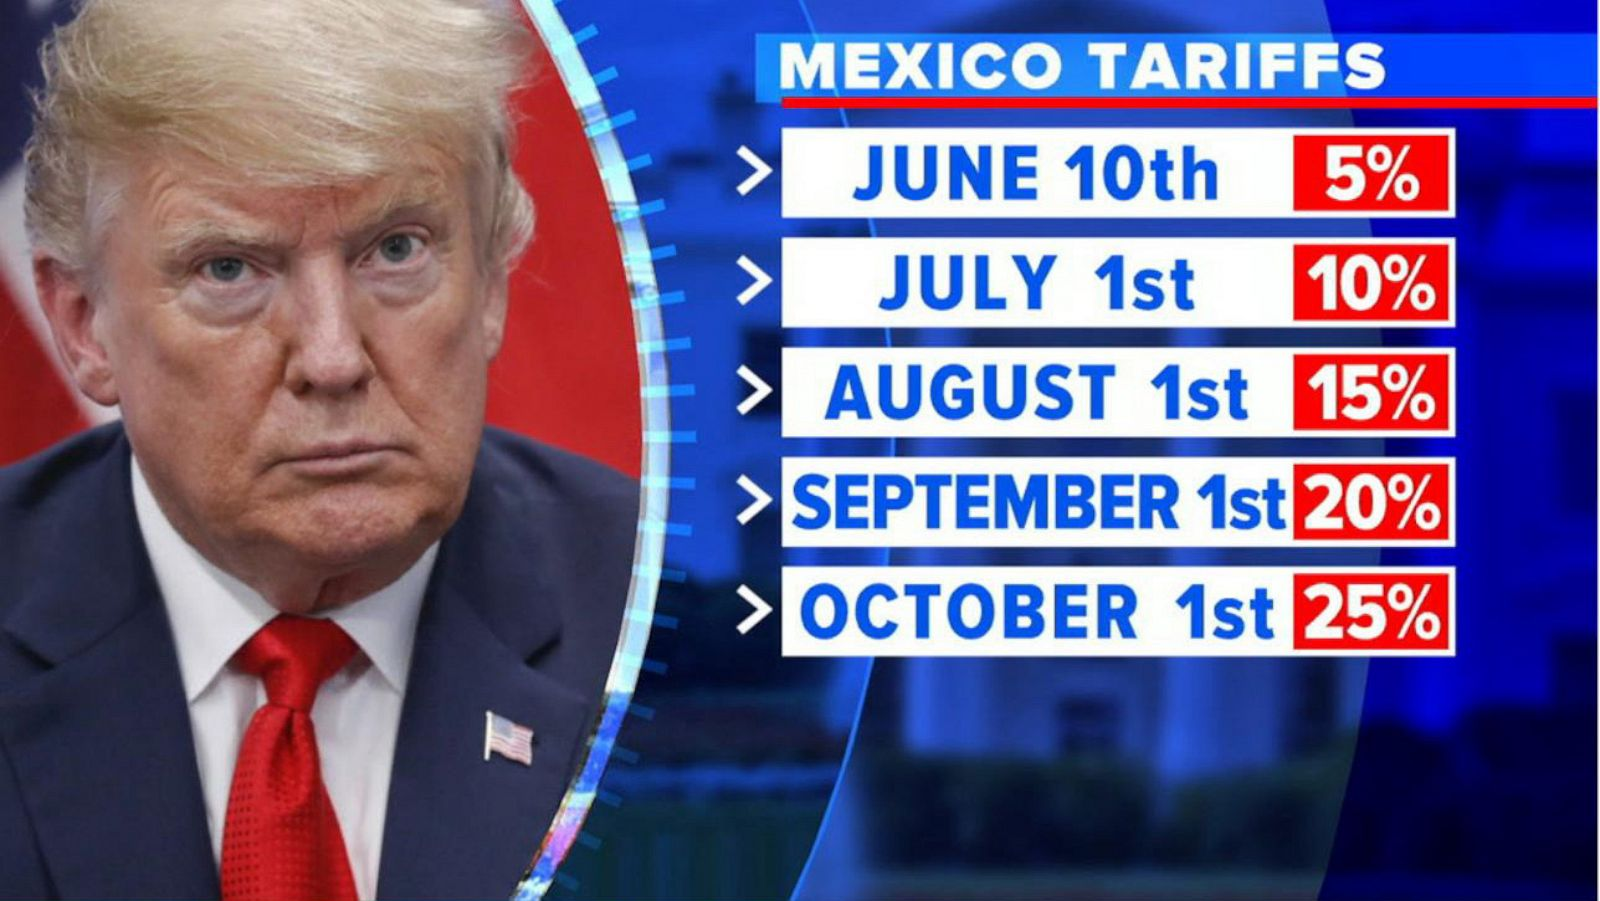 Mexico Caves To Trump? Starting Negotiations on Tariffs Tomorrow | Conservative Angle